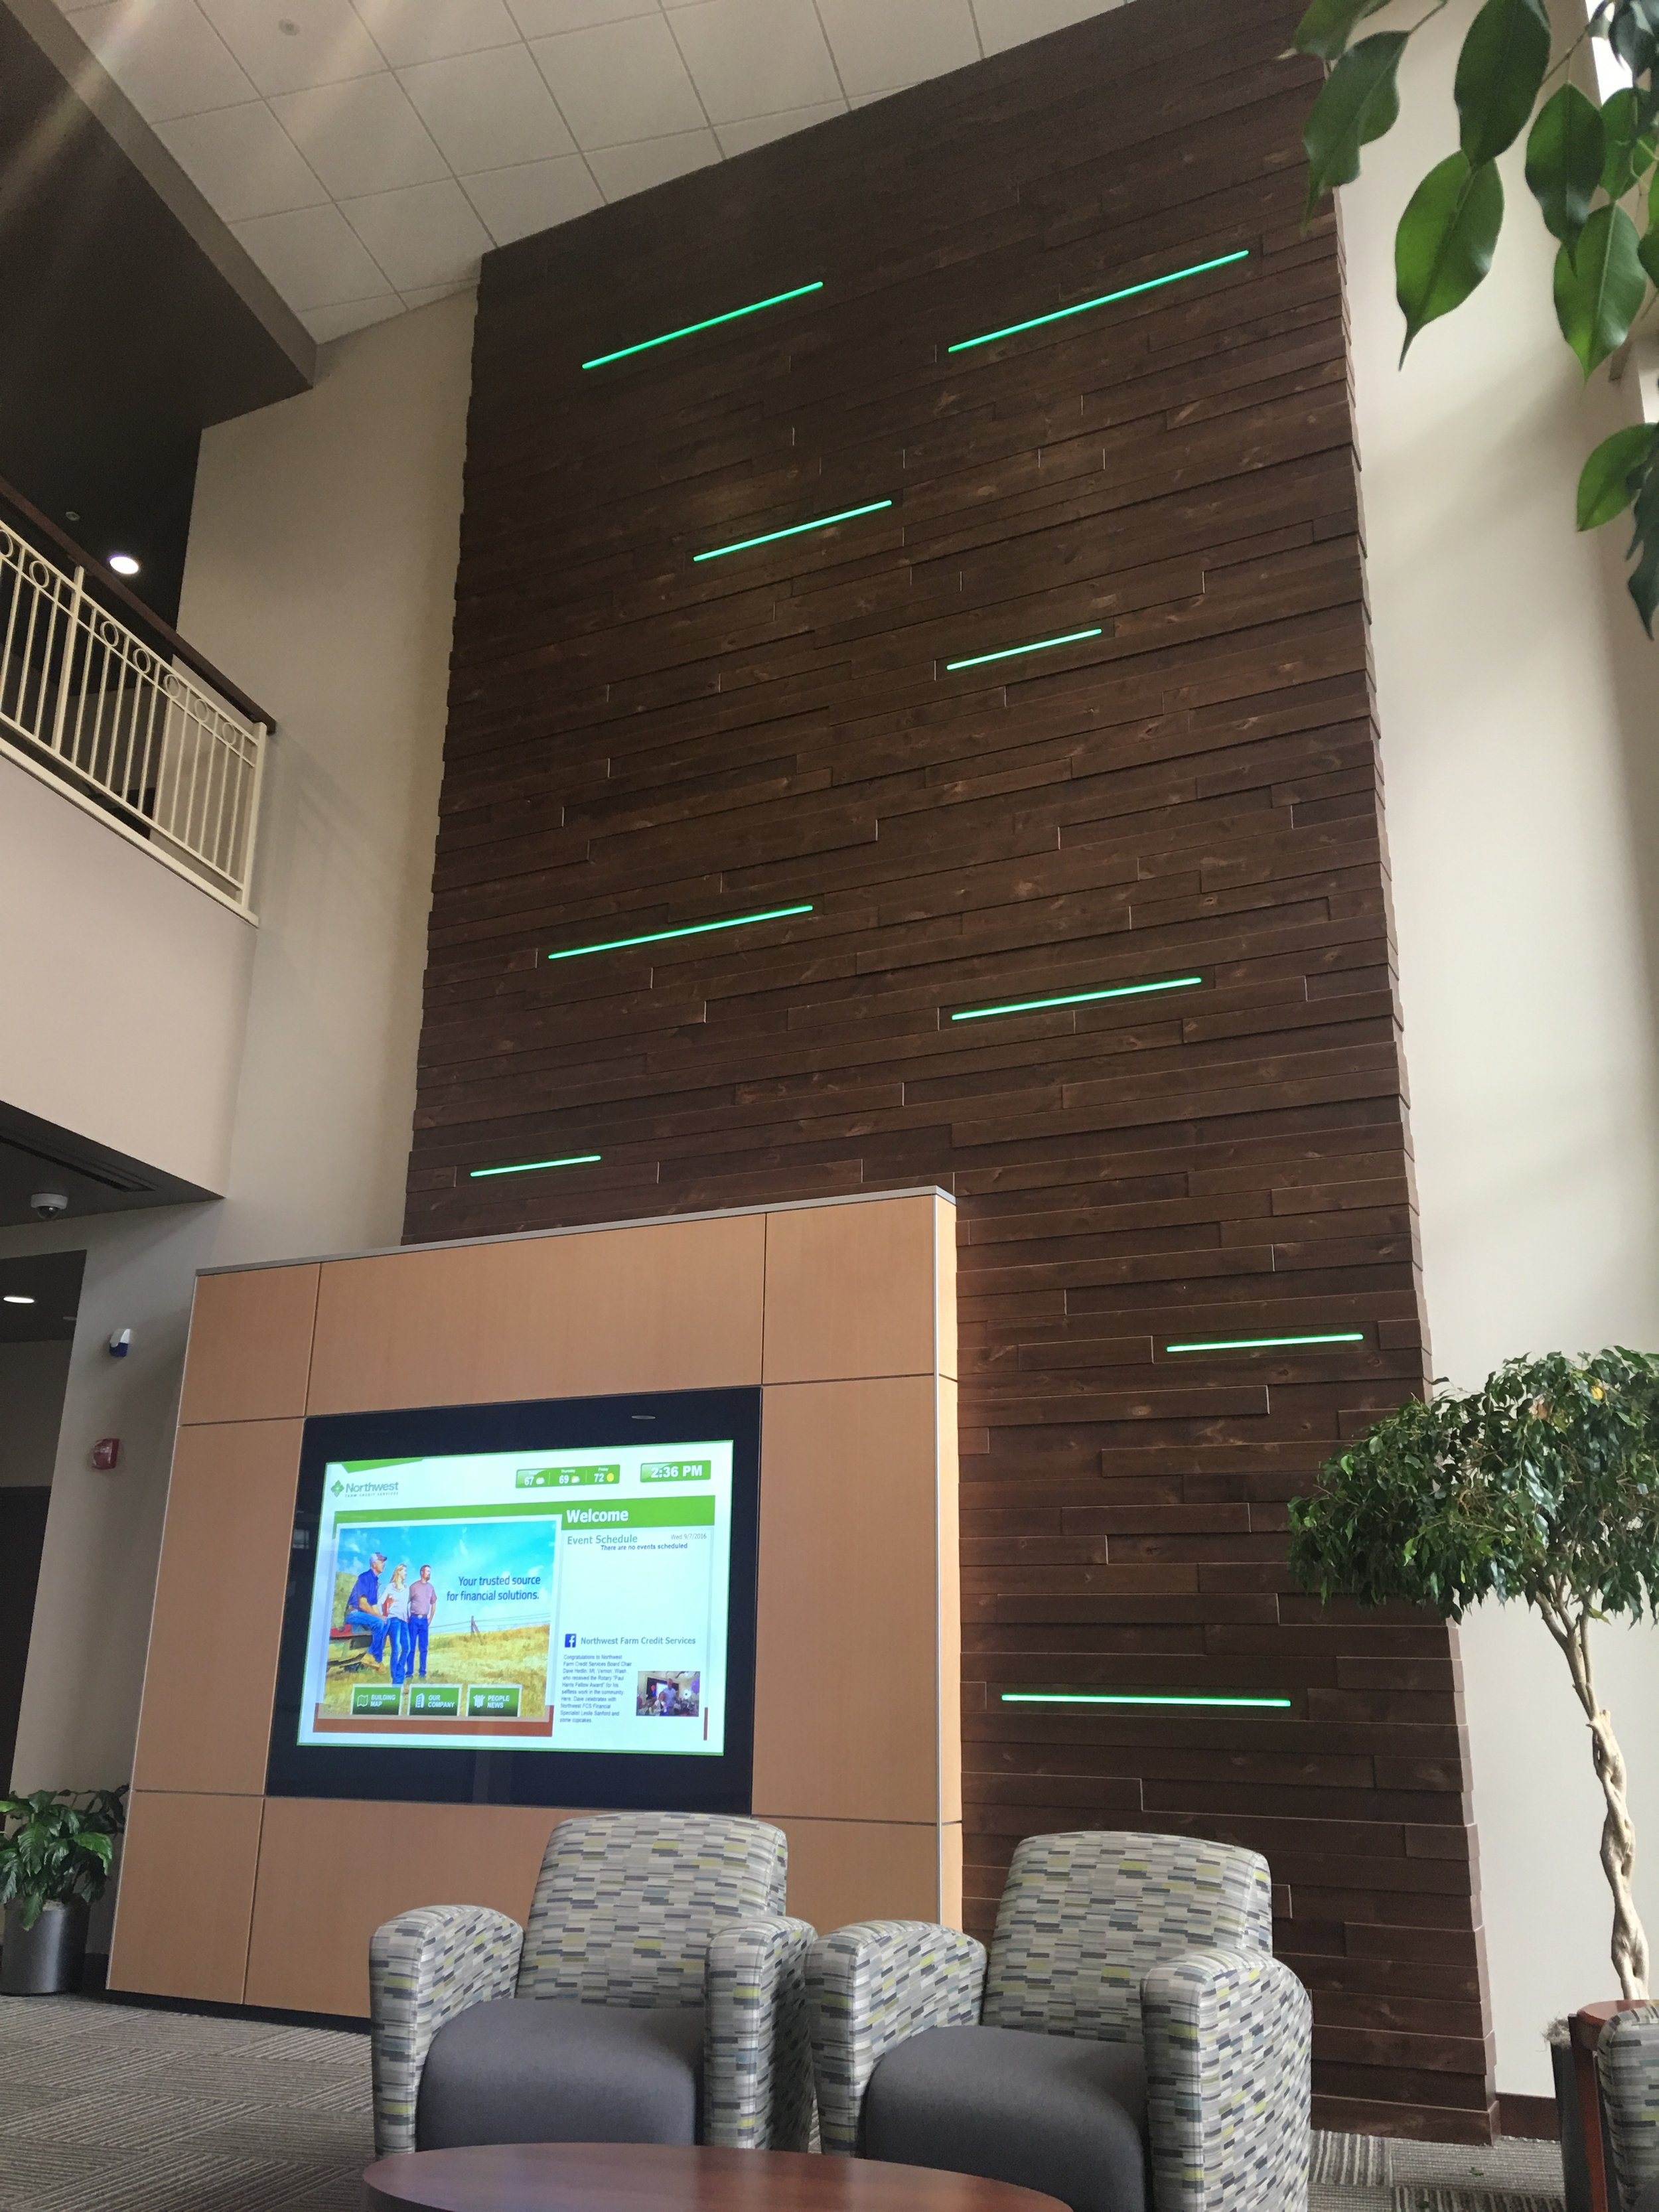 Custom Wood Wall / Integrated LED Lighting / DIRTT wall / Media wall